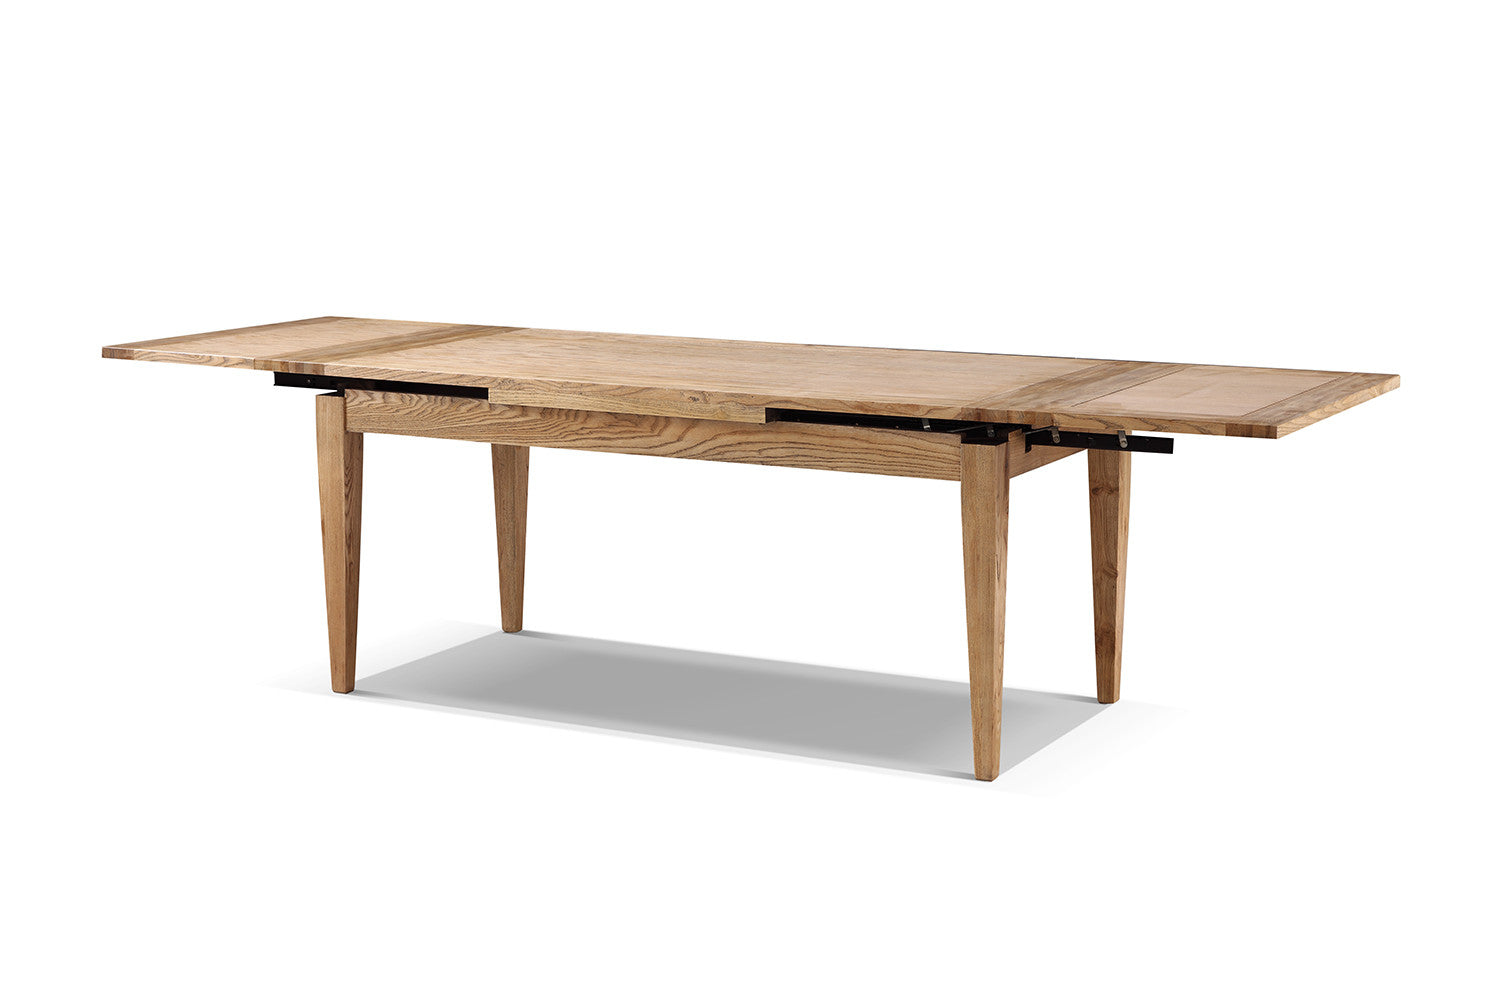 Table manger cottage en bois extensible rose moore for Table en bois salle a manger extensible